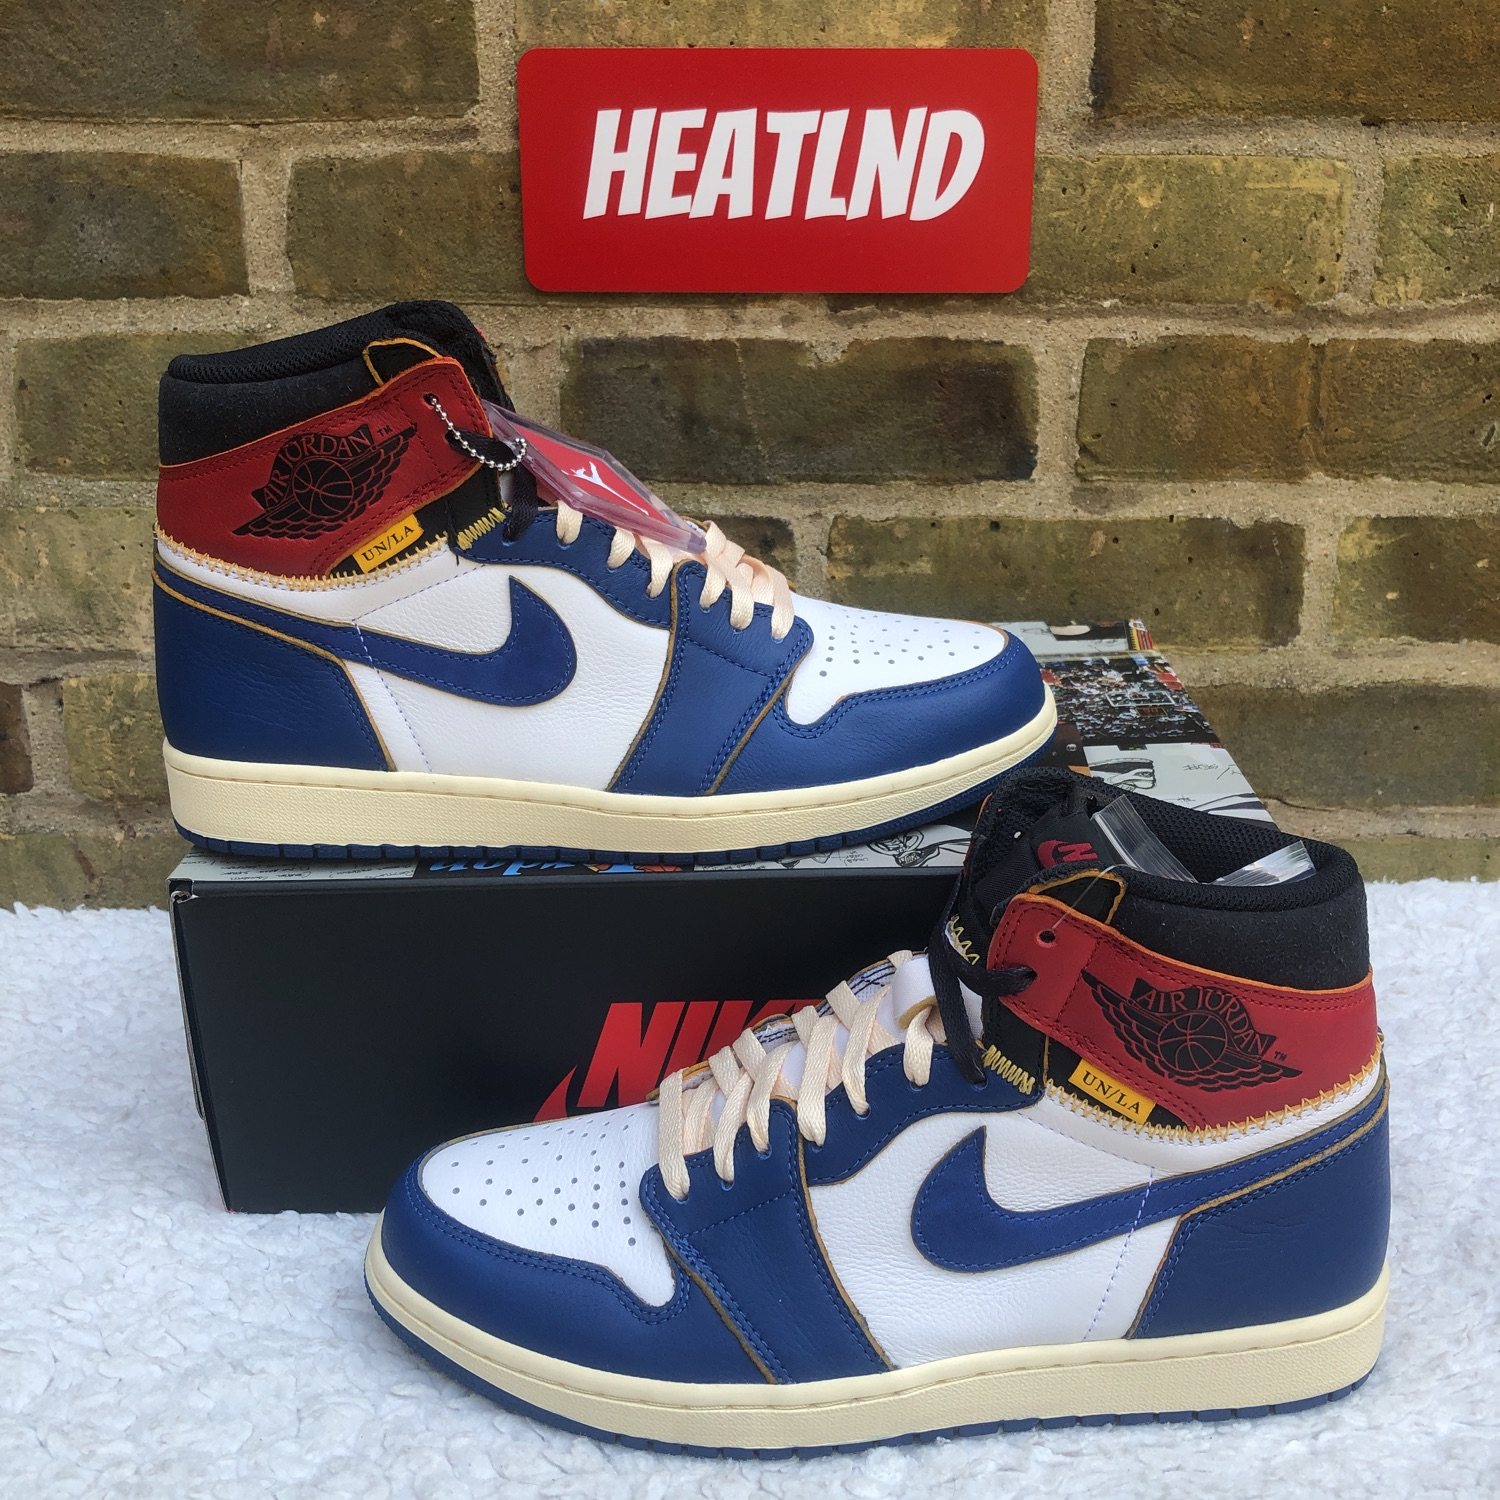 Union X Air Jordan 1 Retro Hi Nrg / Un